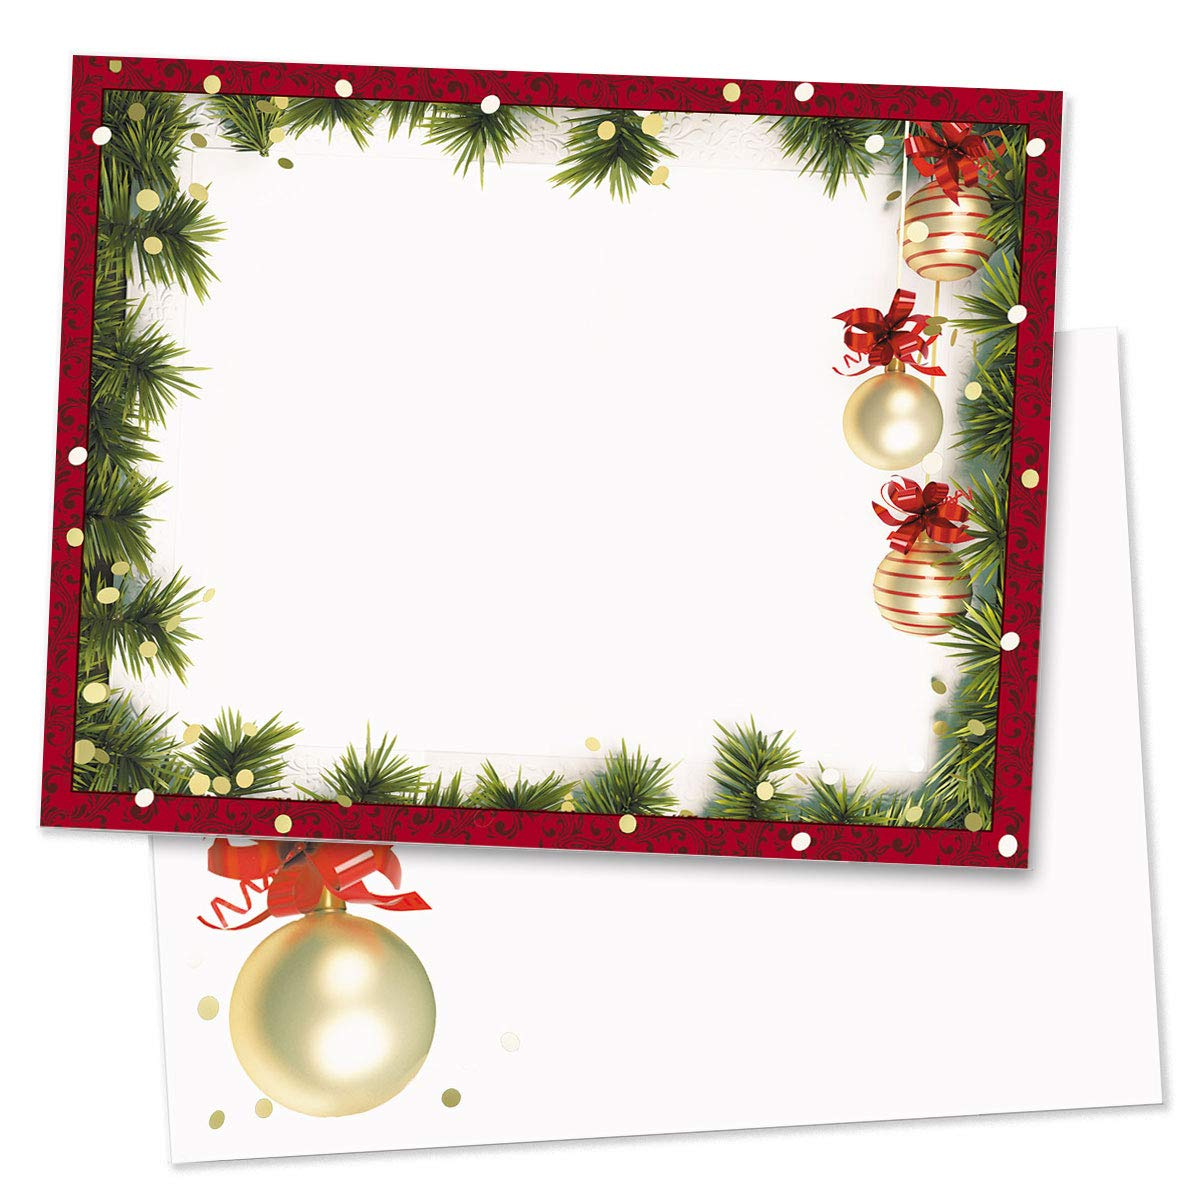 Christmas Twilight Postcards, Standard Size, 400 Count by PaperDirect